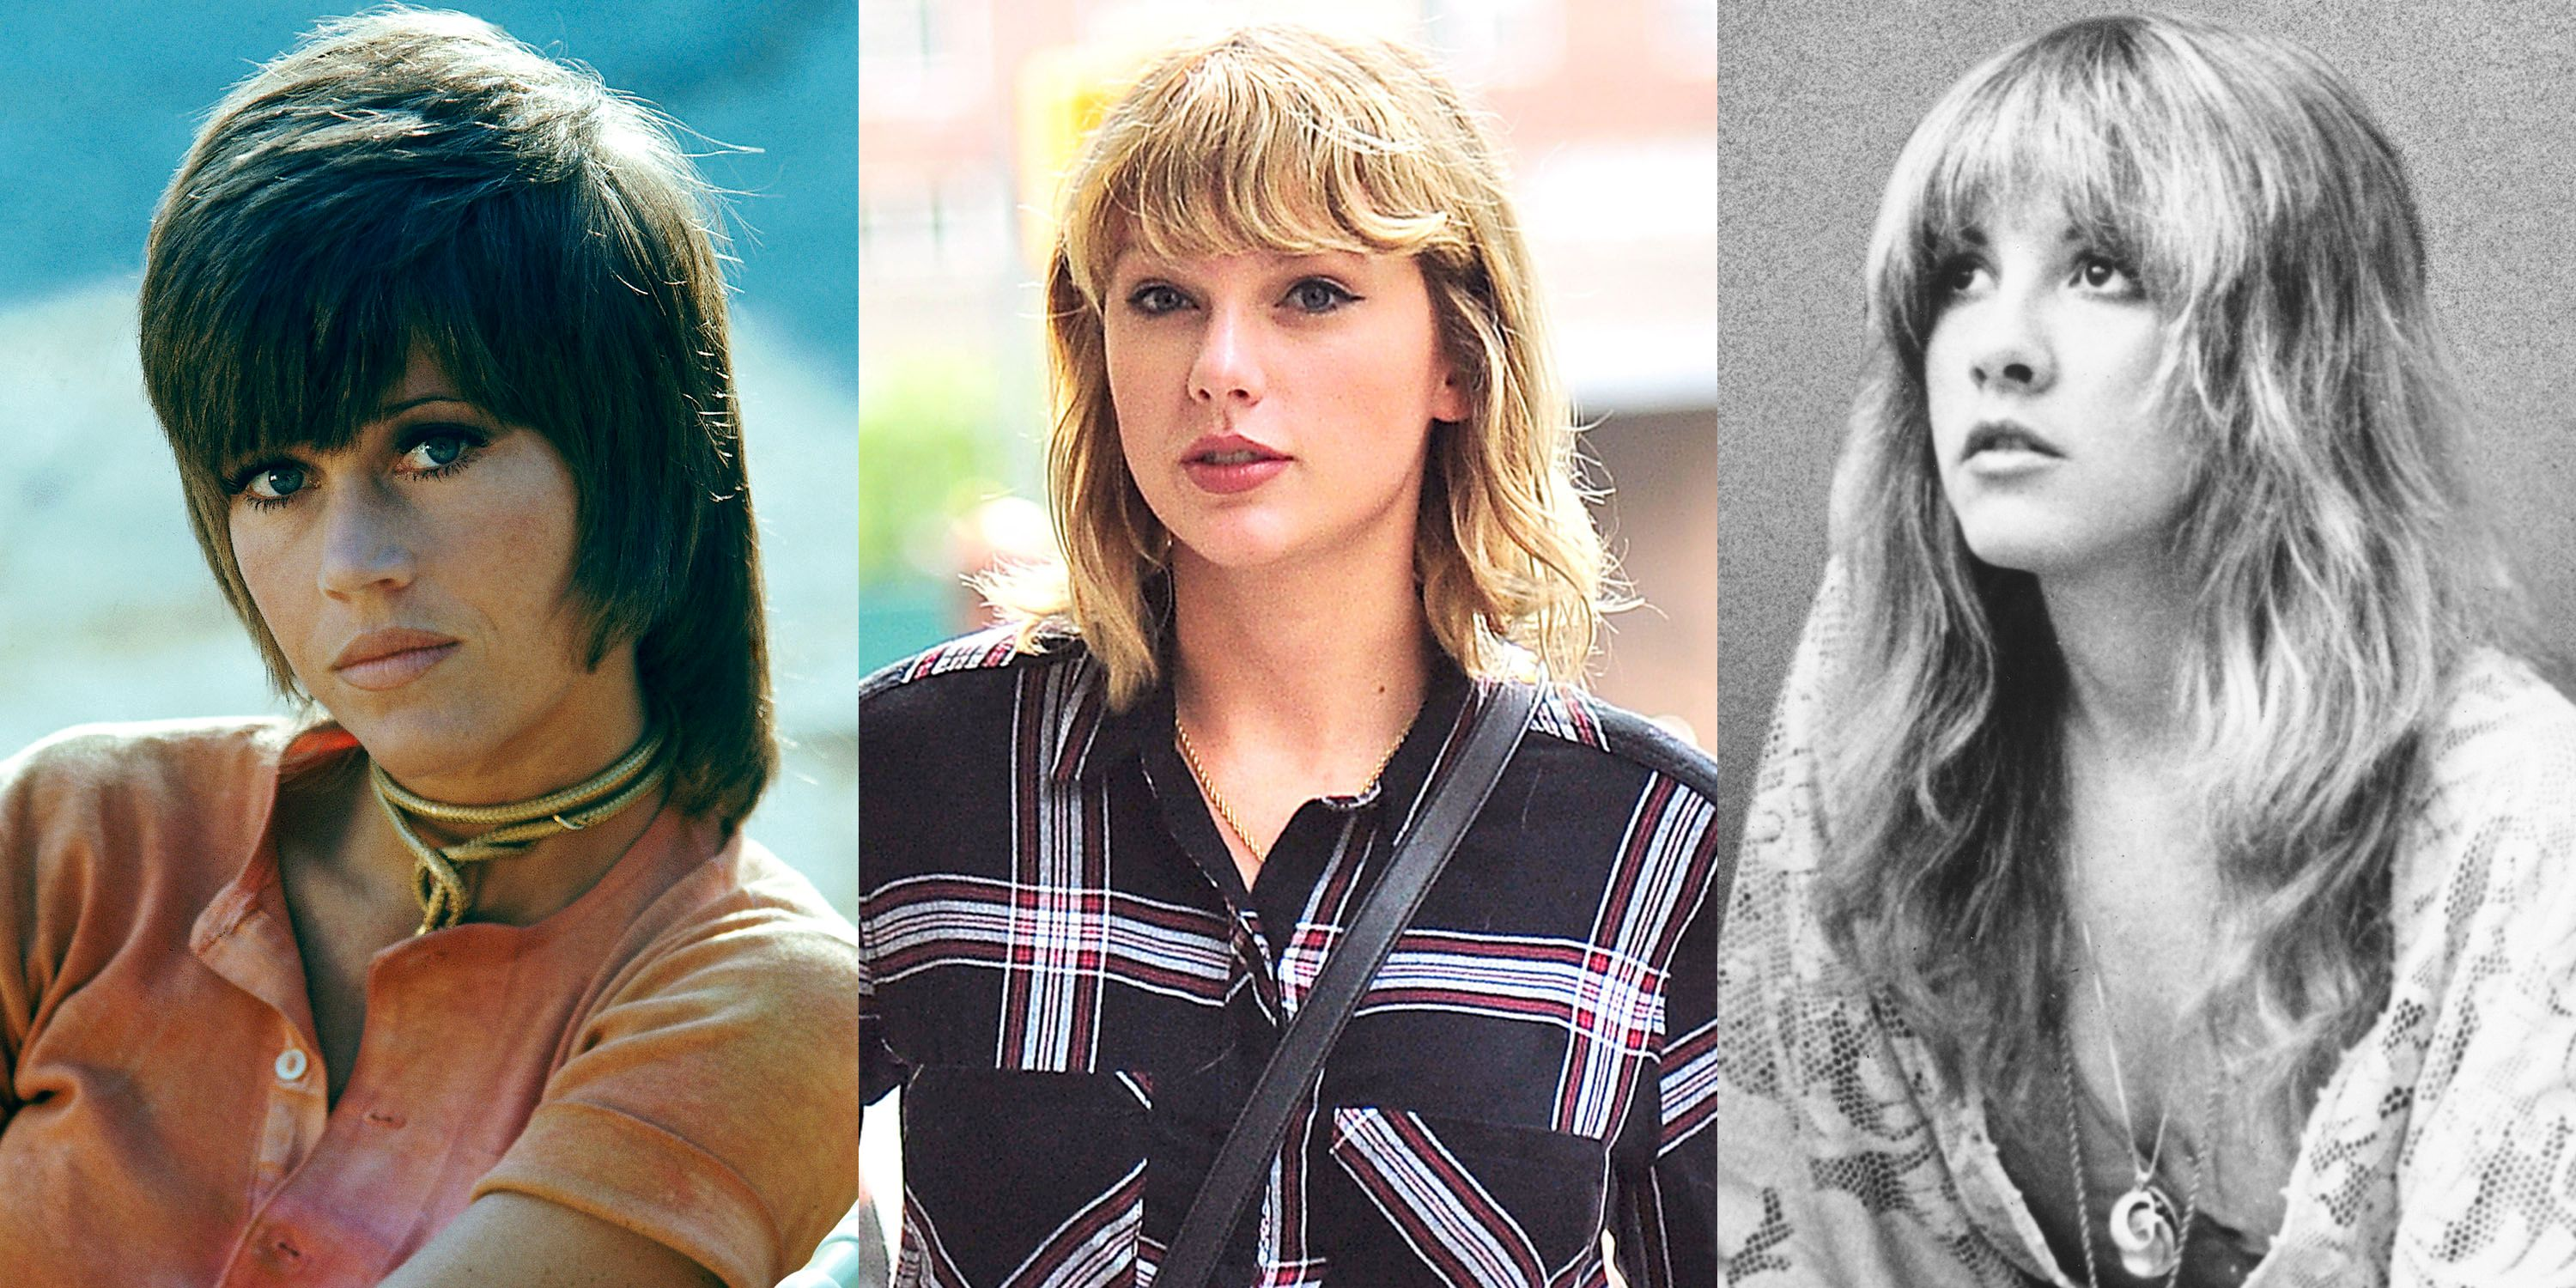 12 Best Shag Haircuts of All Time - Iconic Celebrity Shag Hairstyles